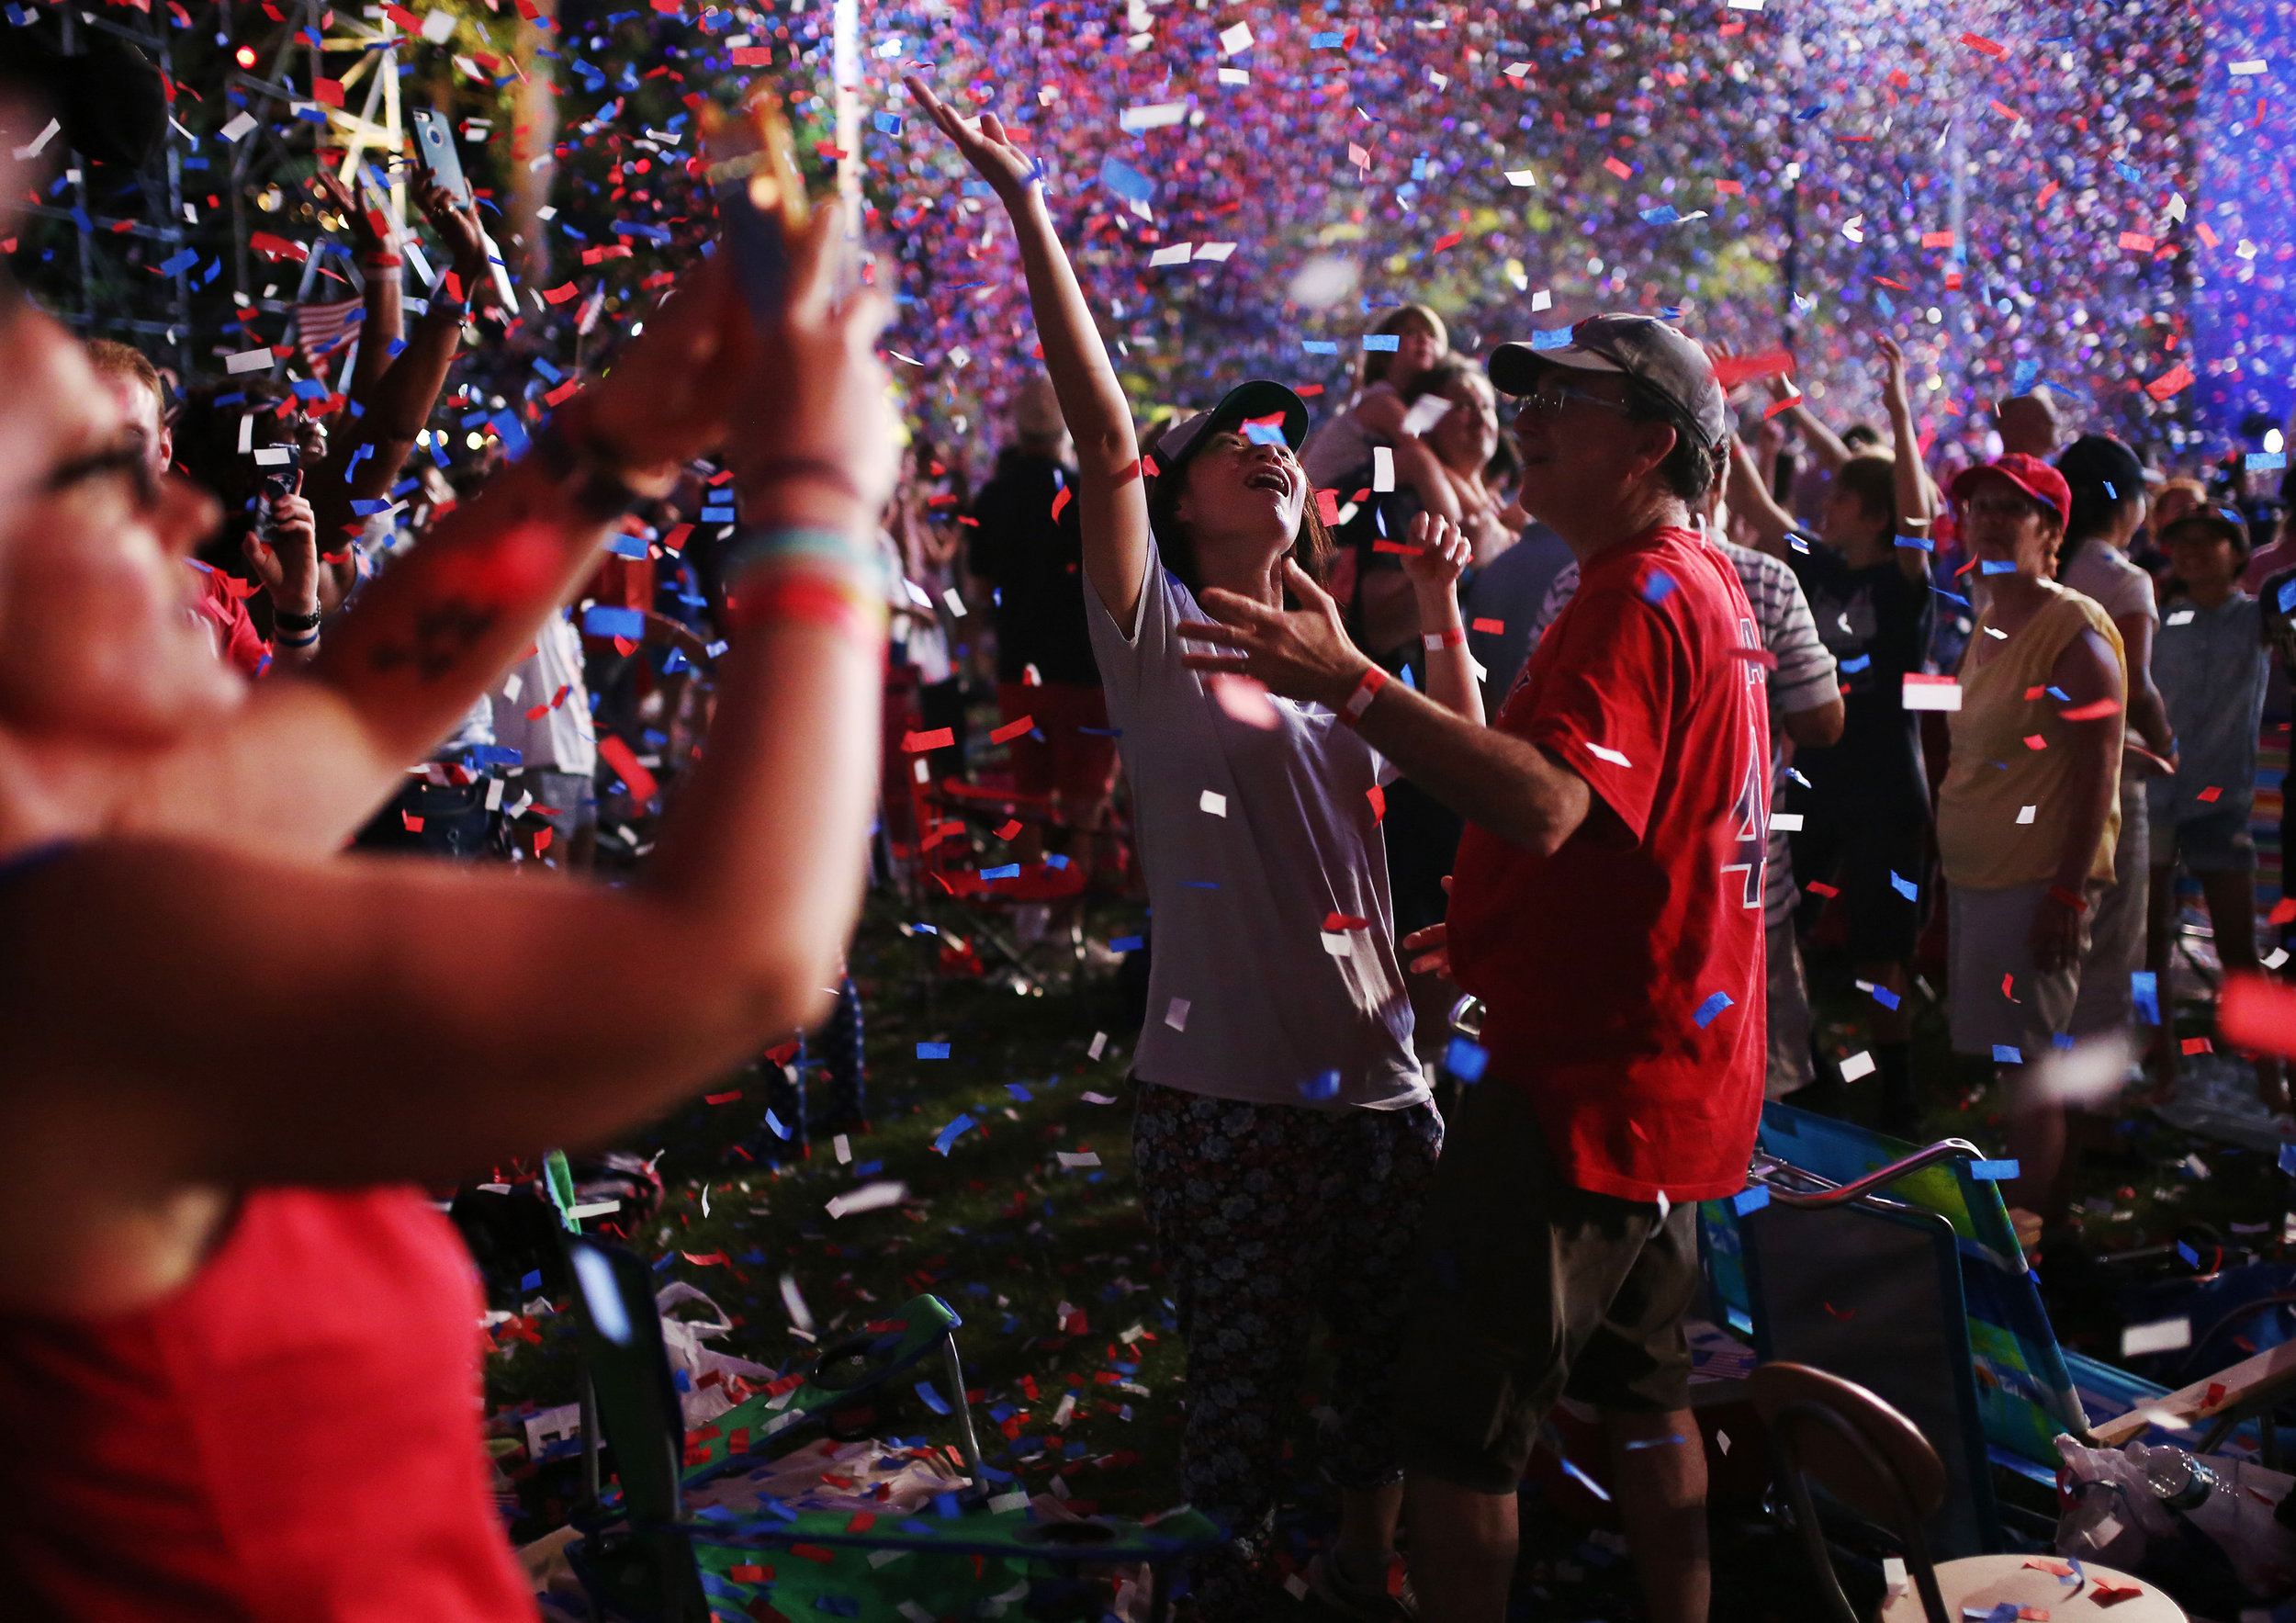 "People celebrate in the confetti during the Boston Pops Fireworks Spectacular. Despite the heat; ""a large crowd came out to celebrate one of the country's largest and oldest public Fourth-of-July events that took place on the Esplanade."